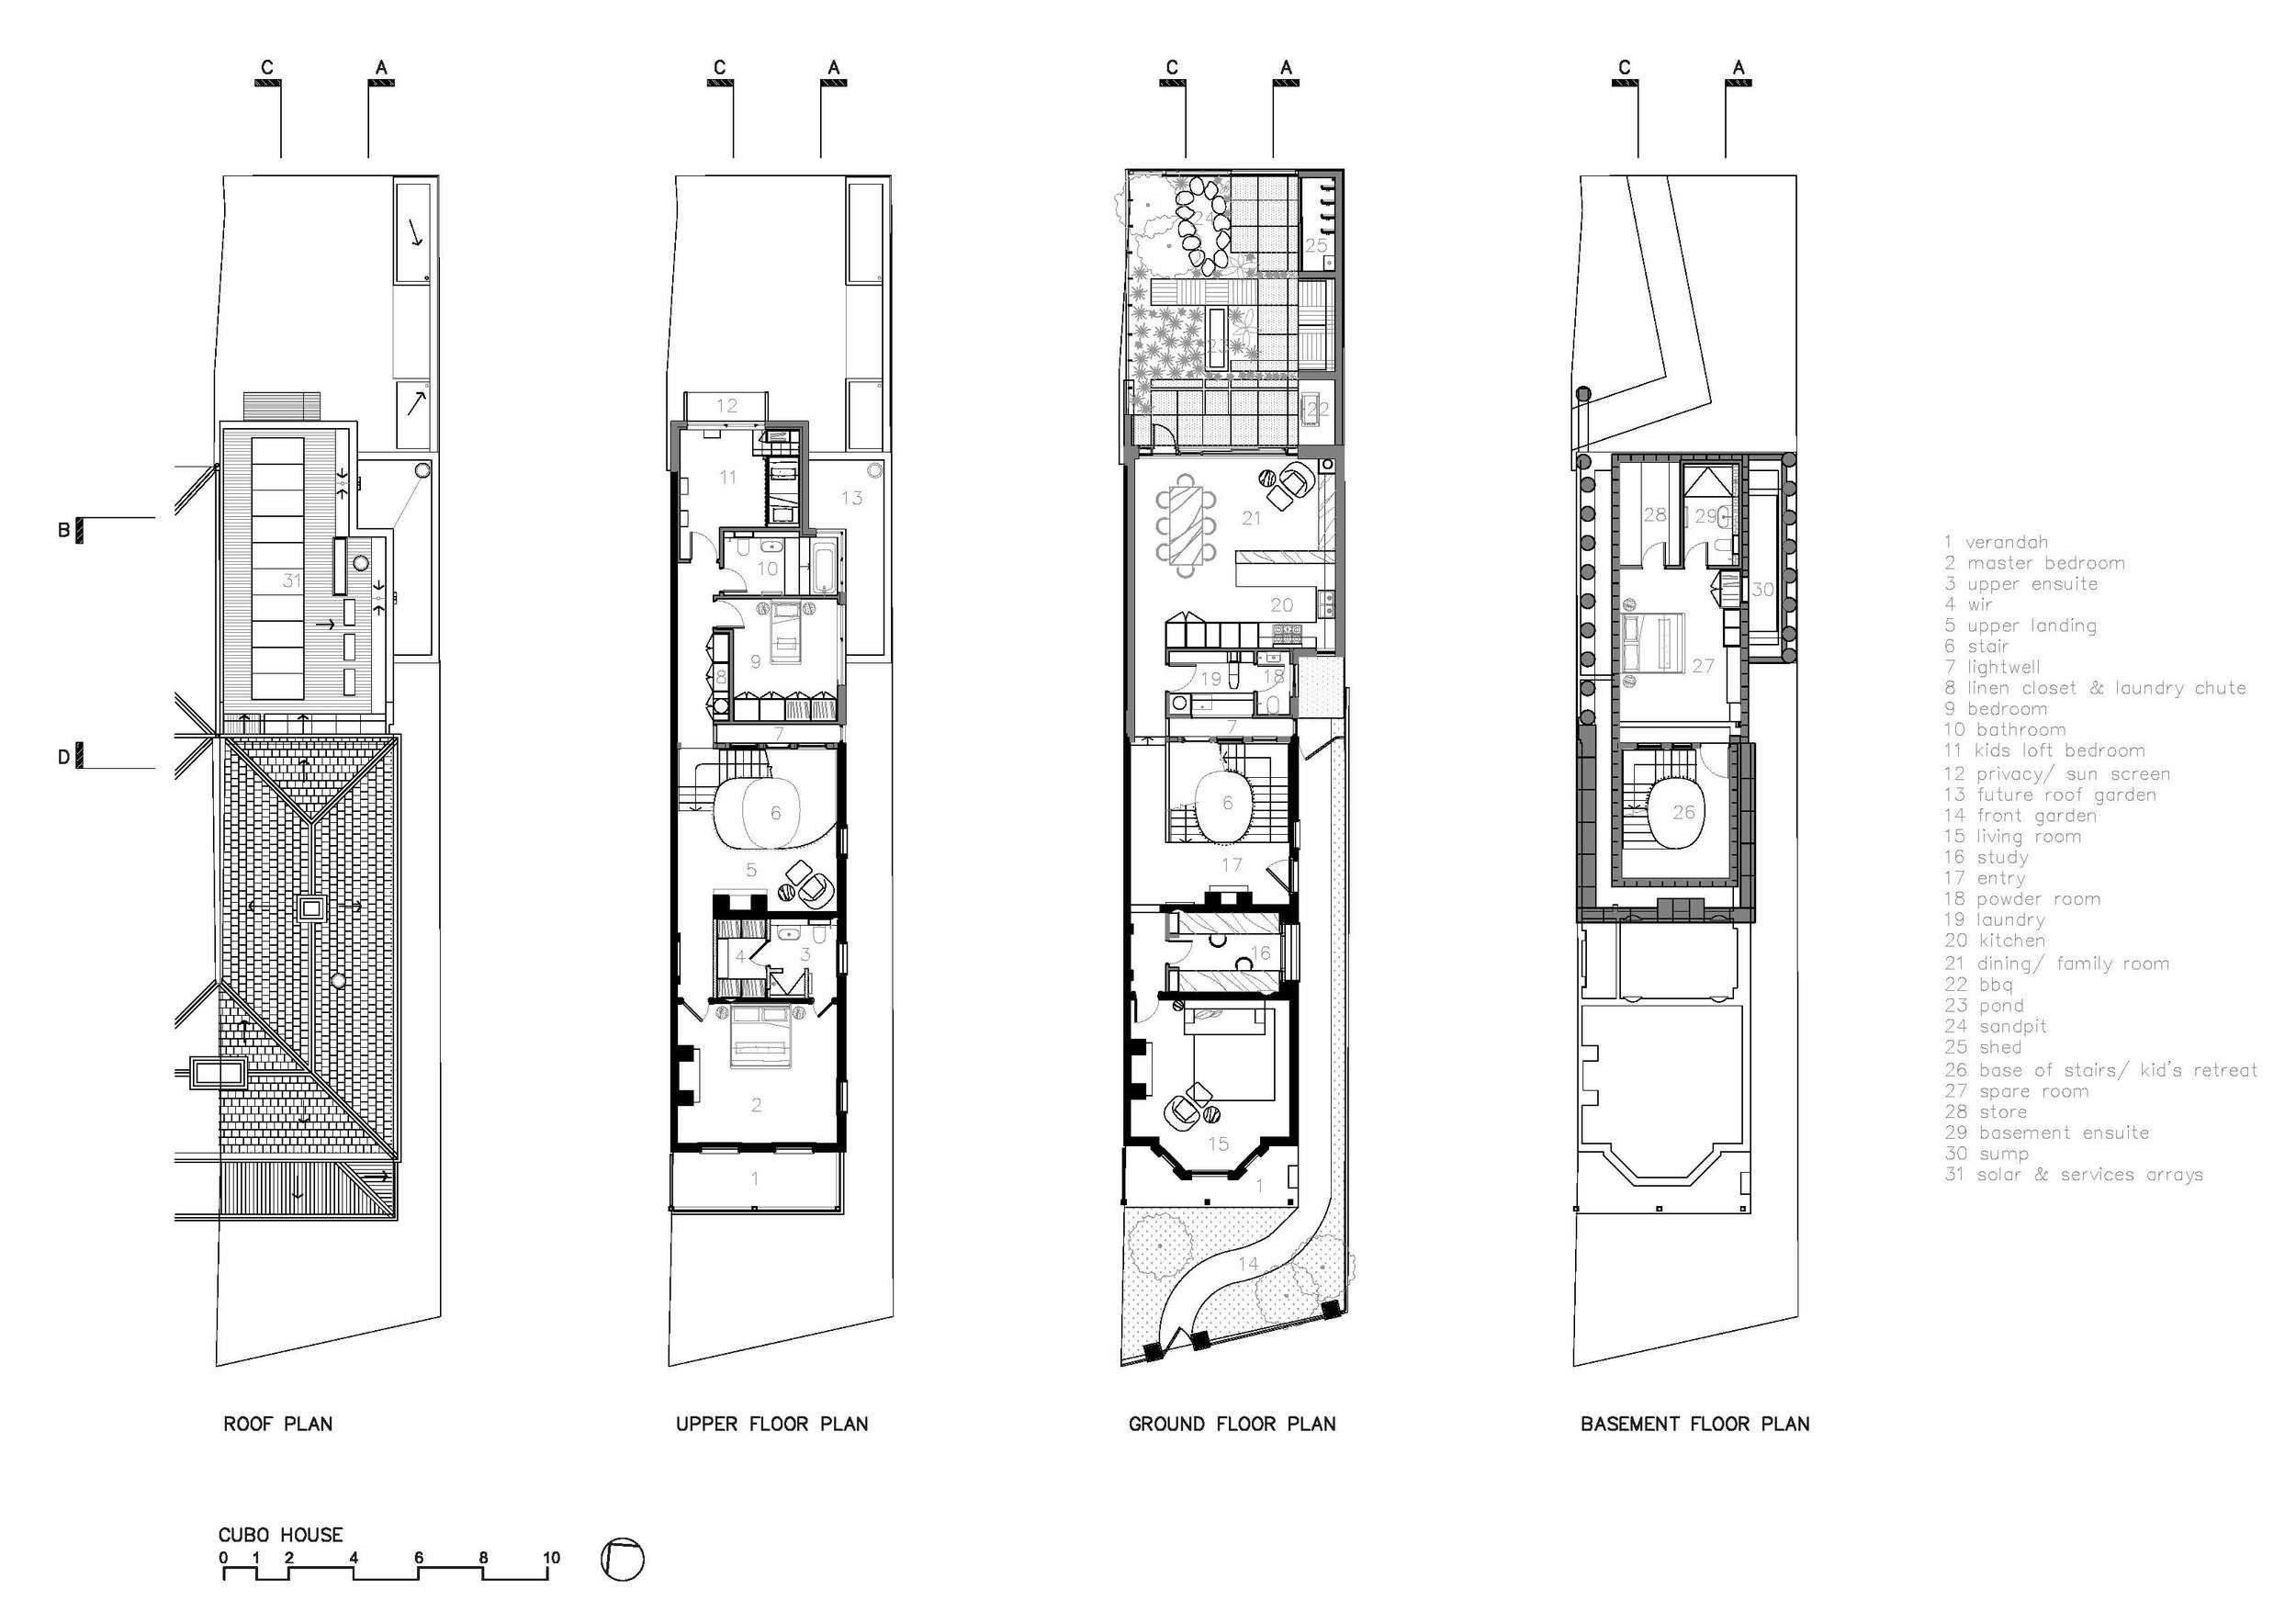 PHOOEY Architects Cubo House PLANS.jpg